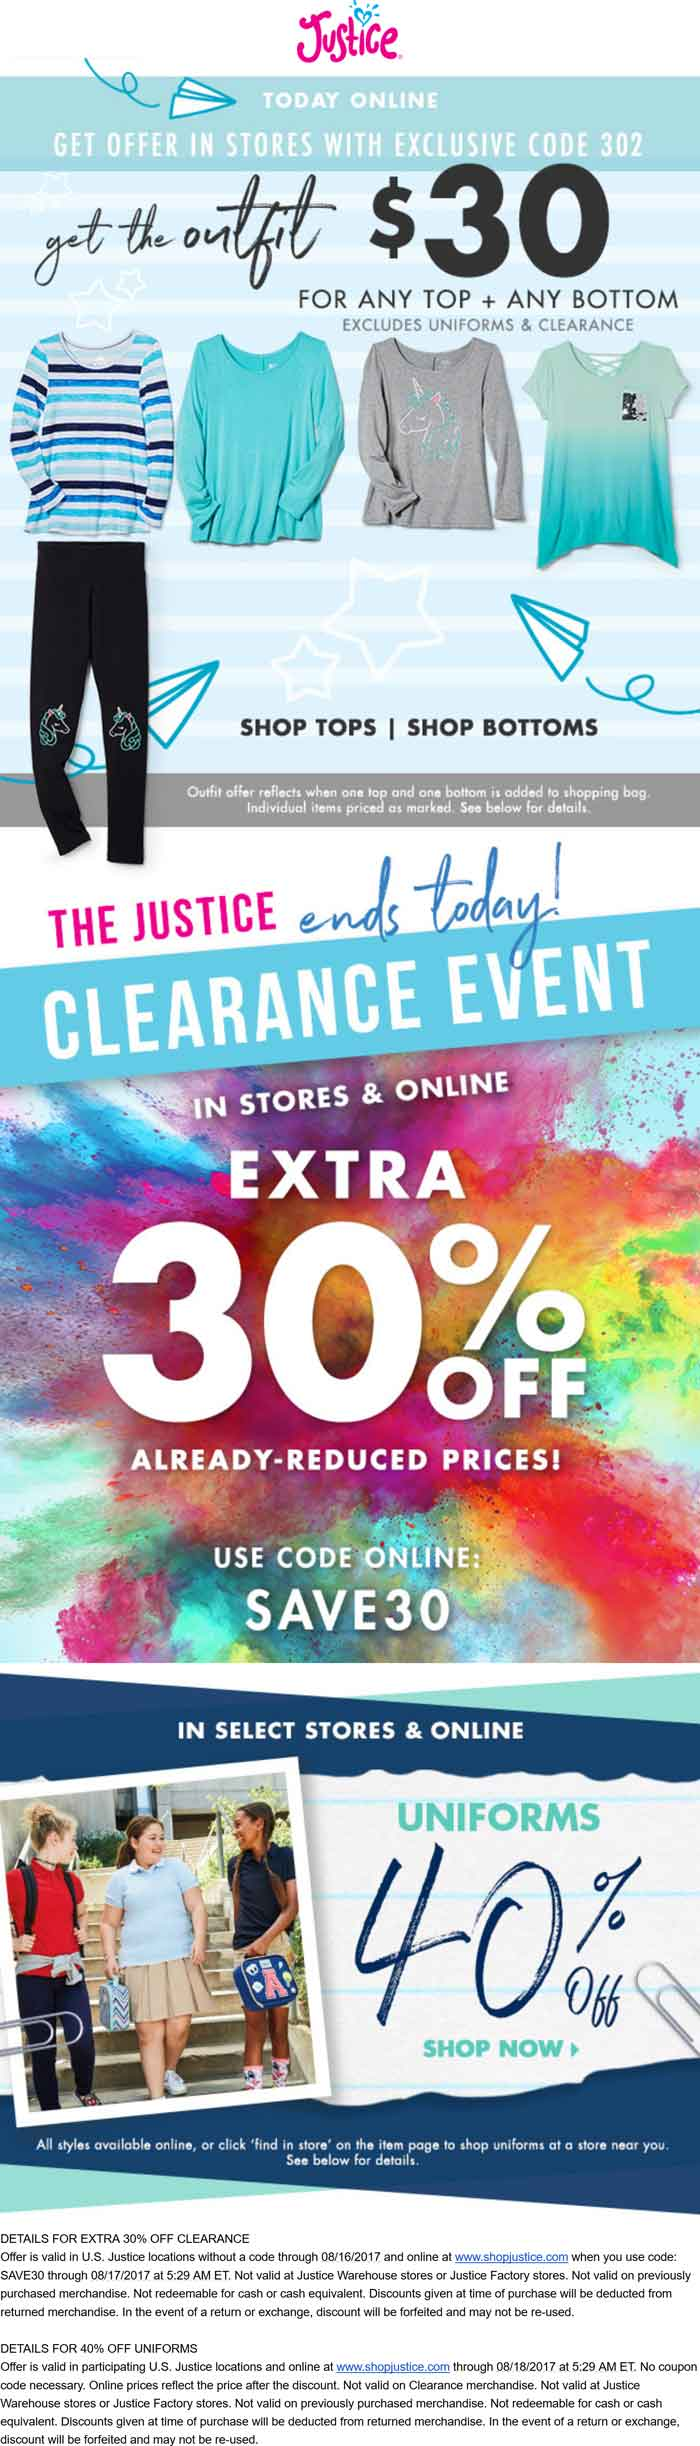 Justice Coupon March 2018 Extra 30% off clearance today at Justice, or online via promo code SAVE30